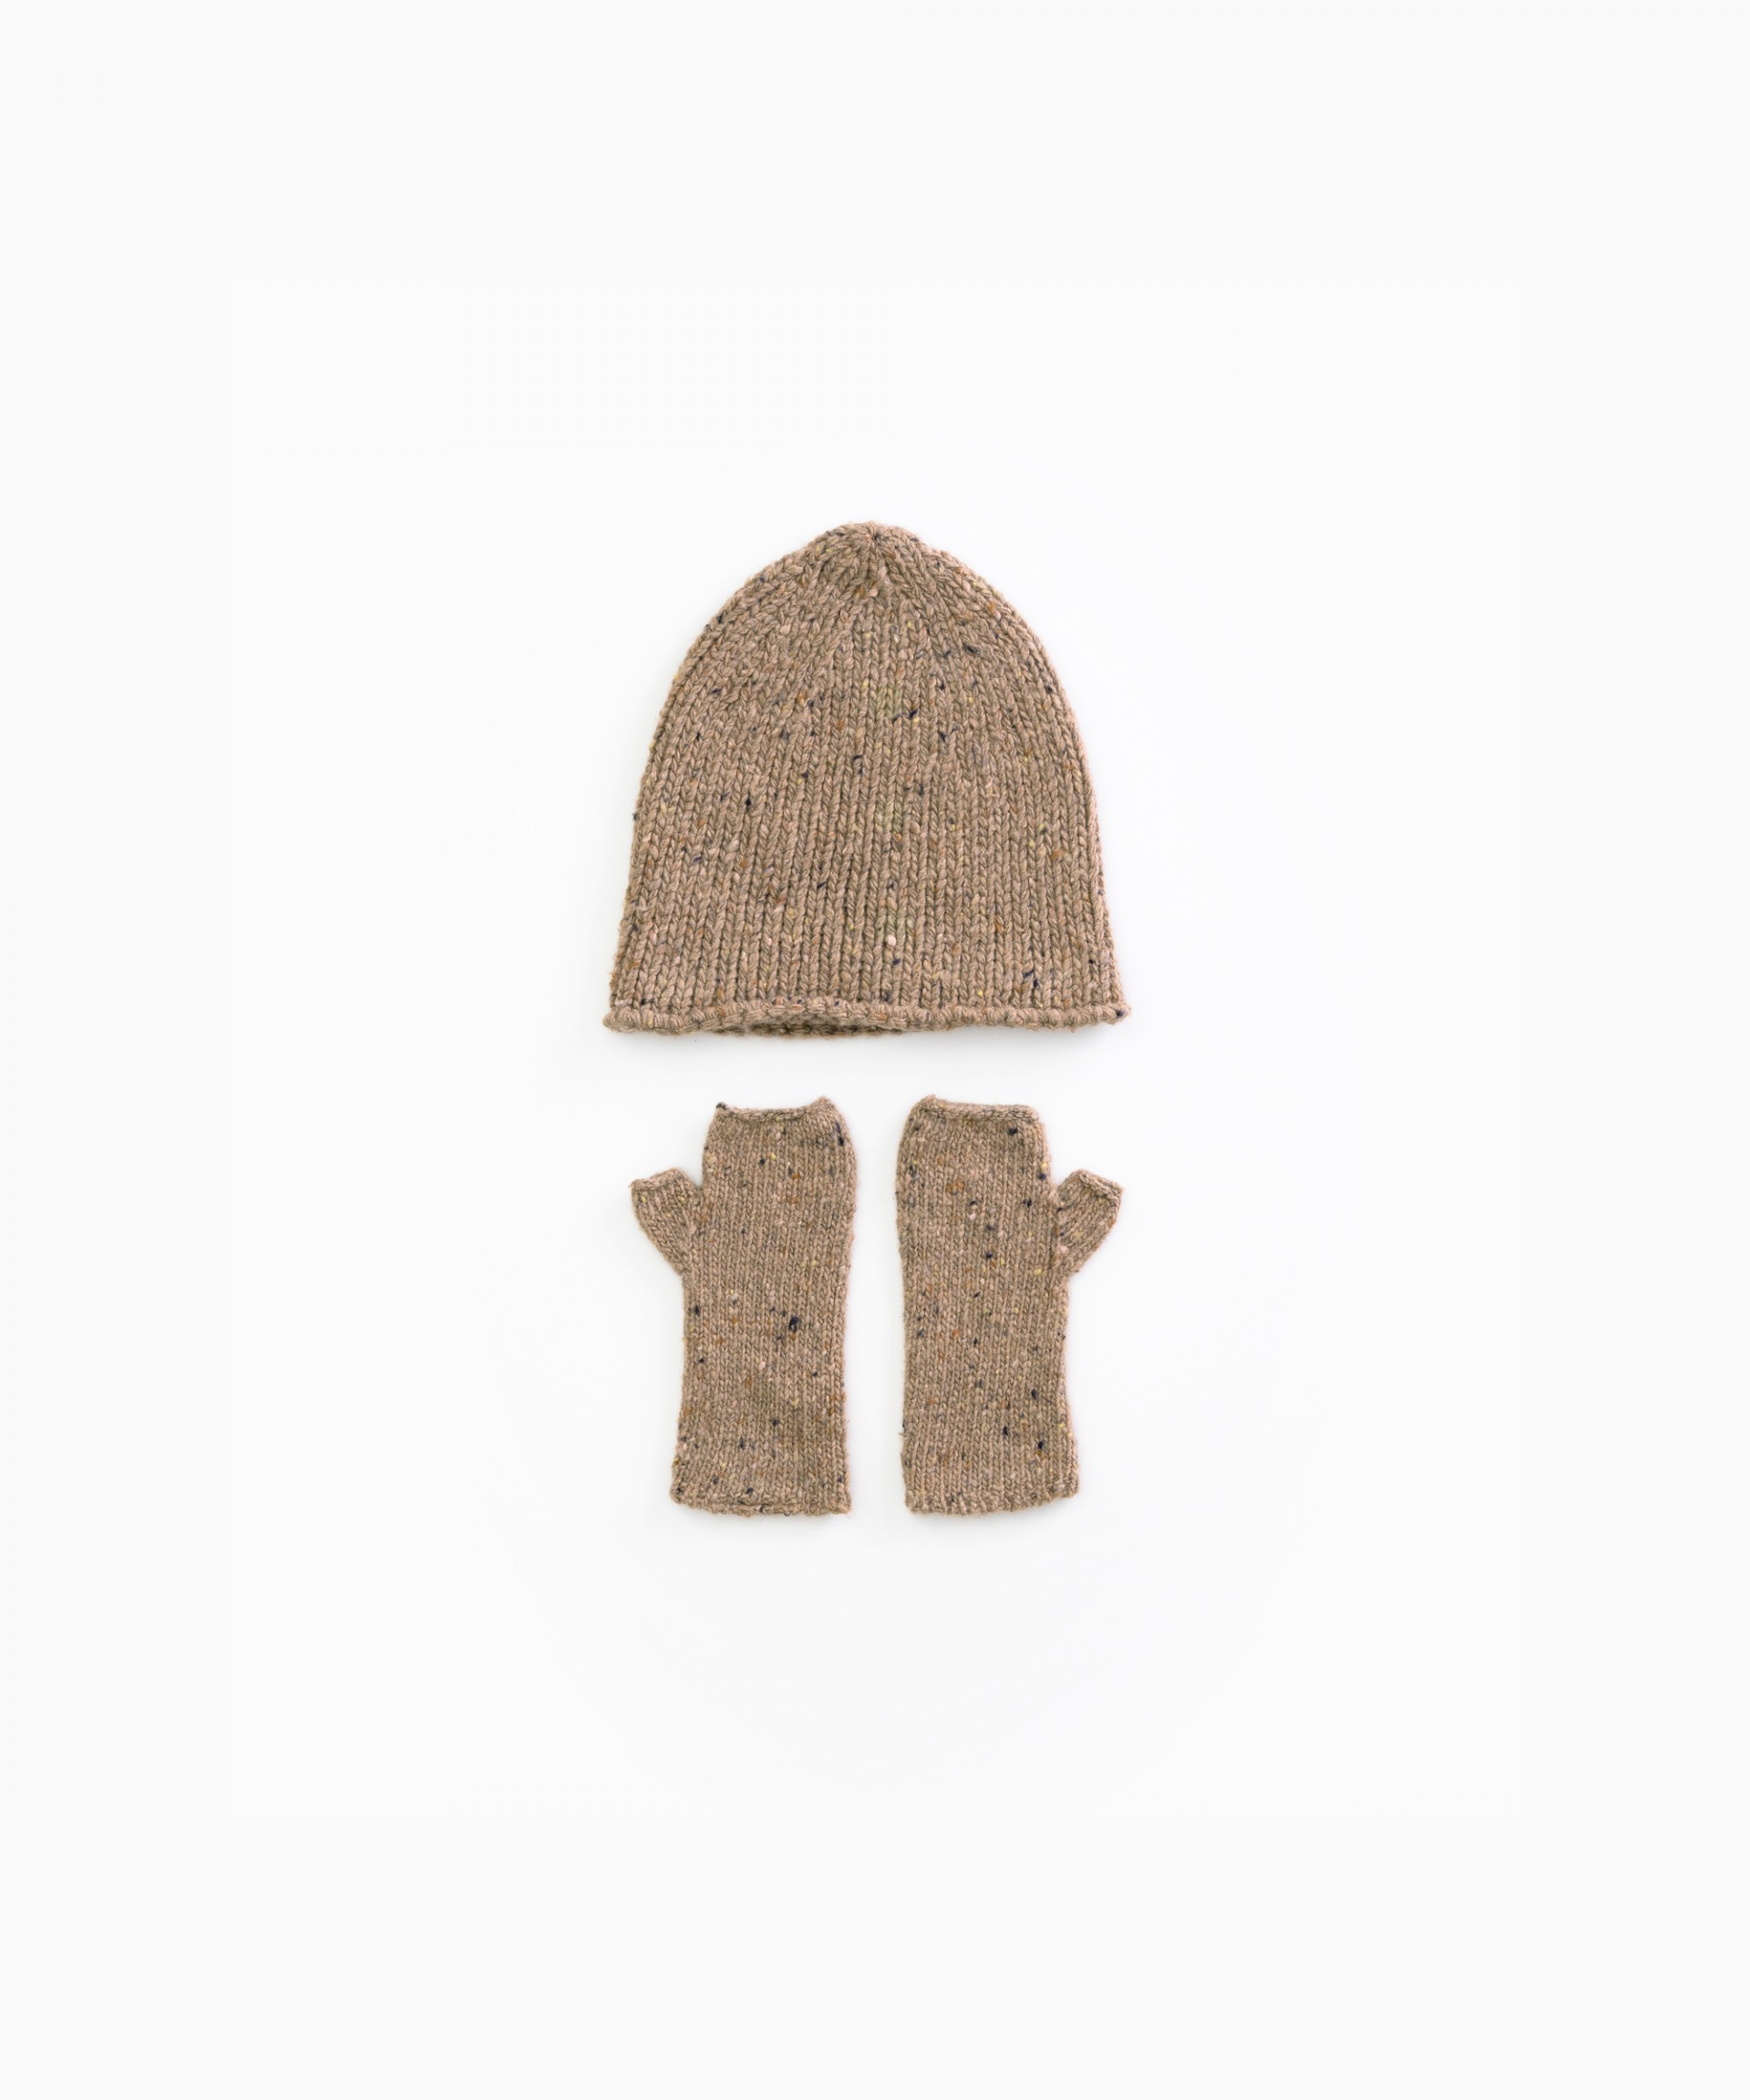 Knitted set with recycled fibres | Woodwork